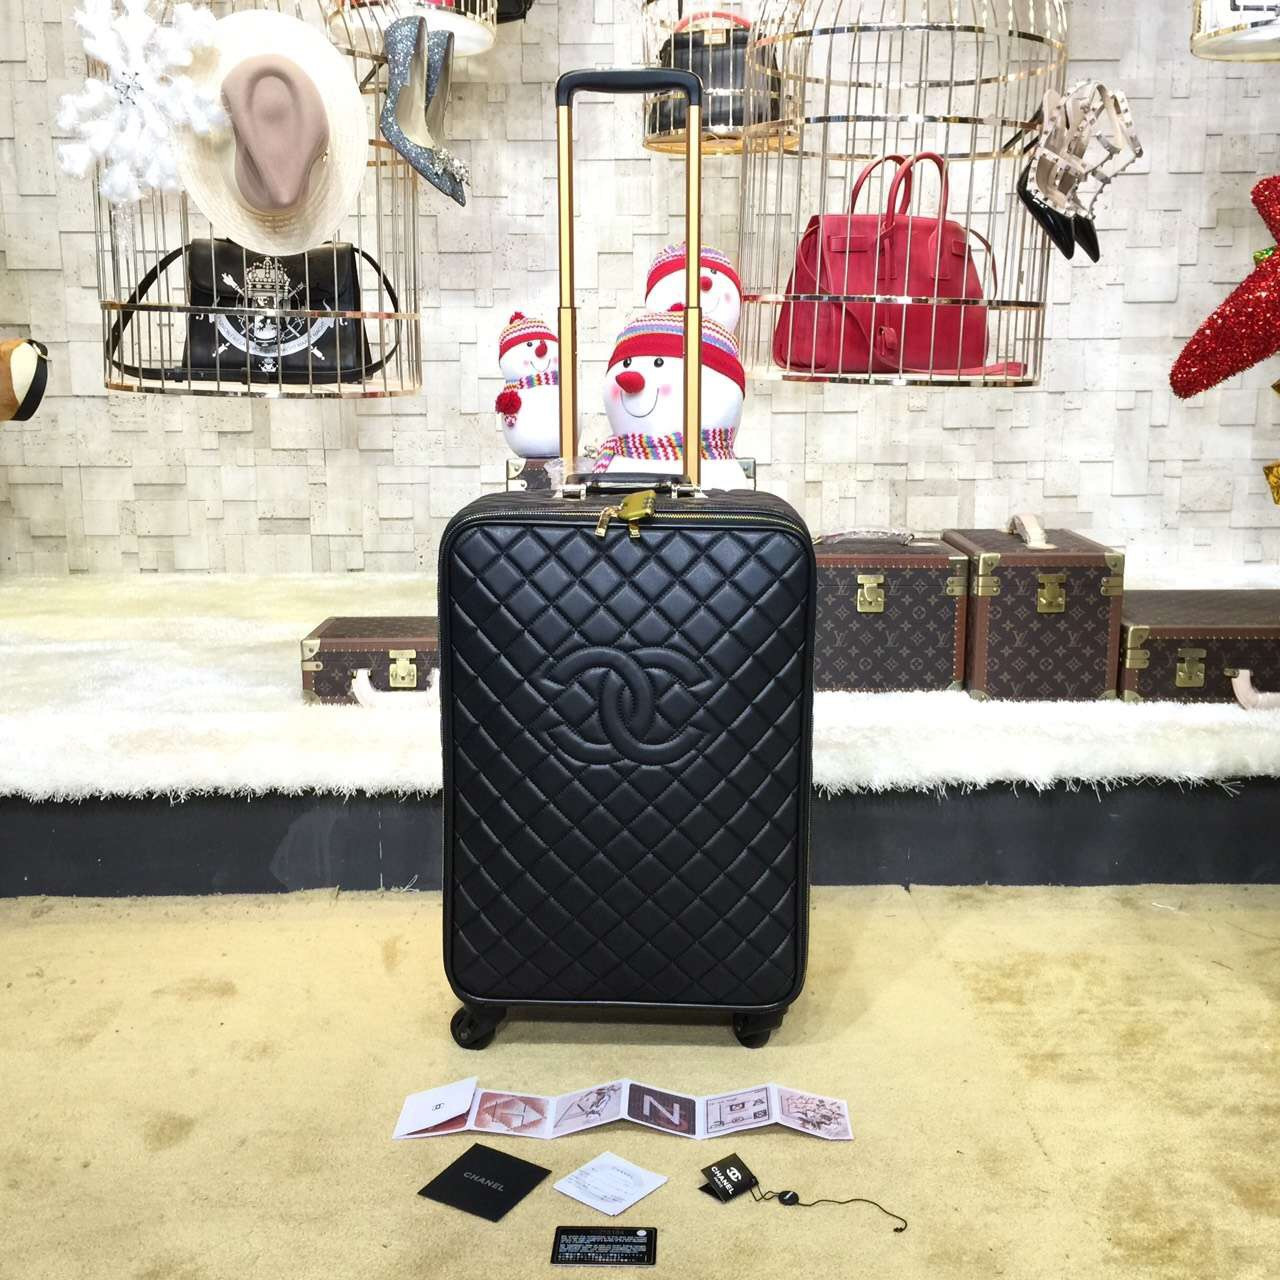 f26f6a3445cd Chanel Travel Trolley Rolling Luggage 50cm Lambskin Leather Gold Hardware  Spring/Summer 2019 Collection,